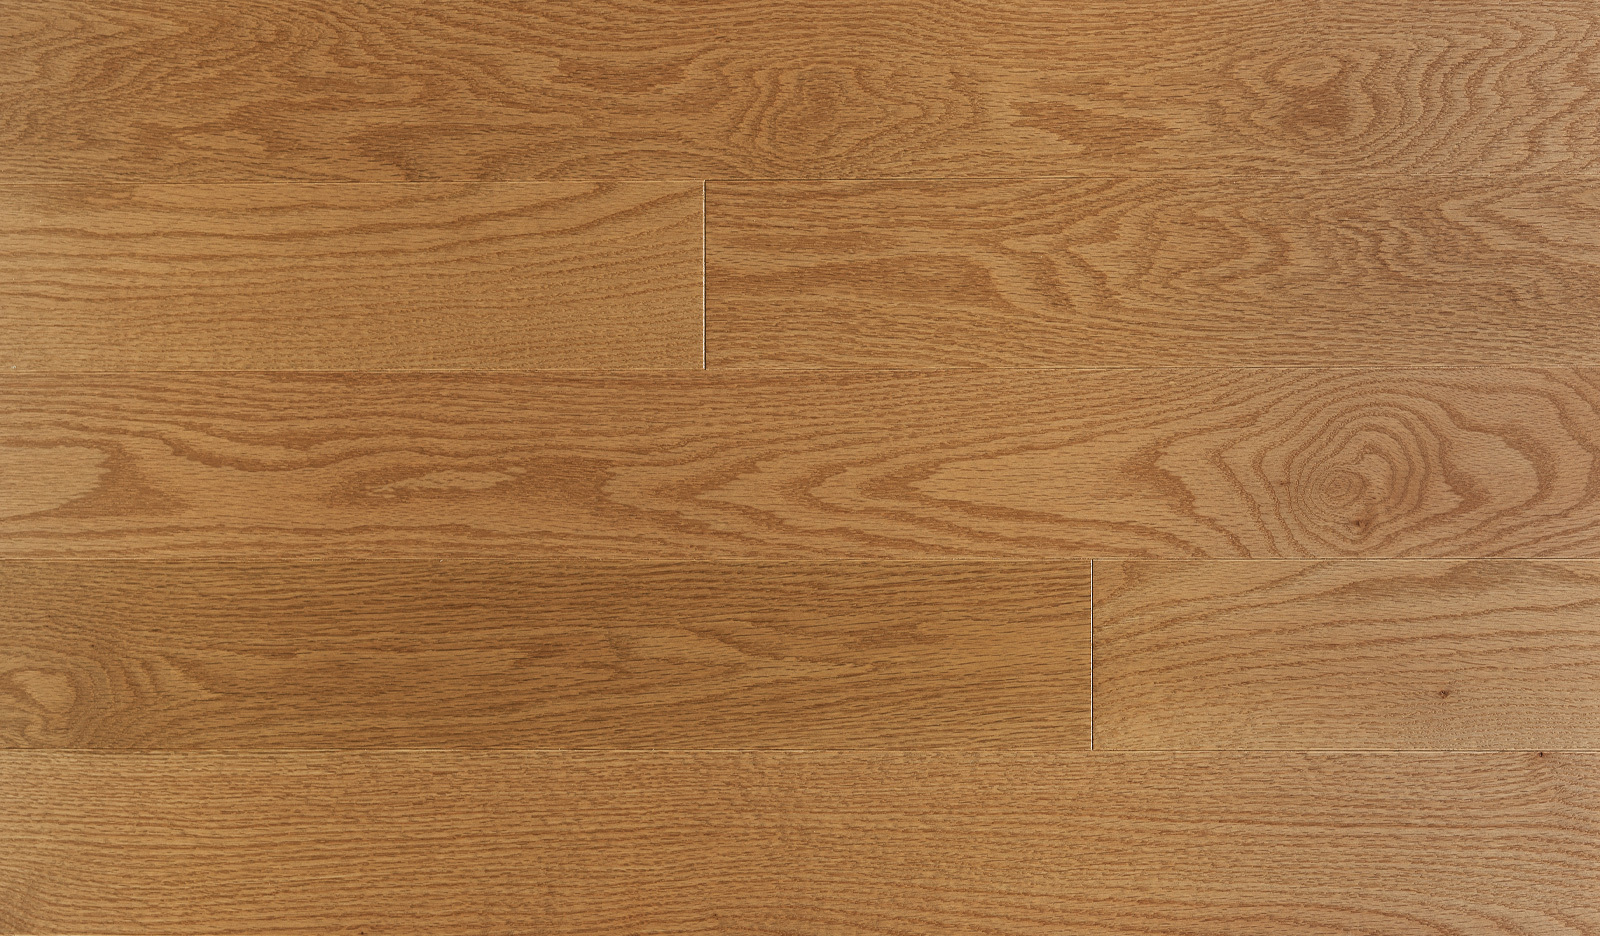 design-red-oak-kalahari-select-and-better